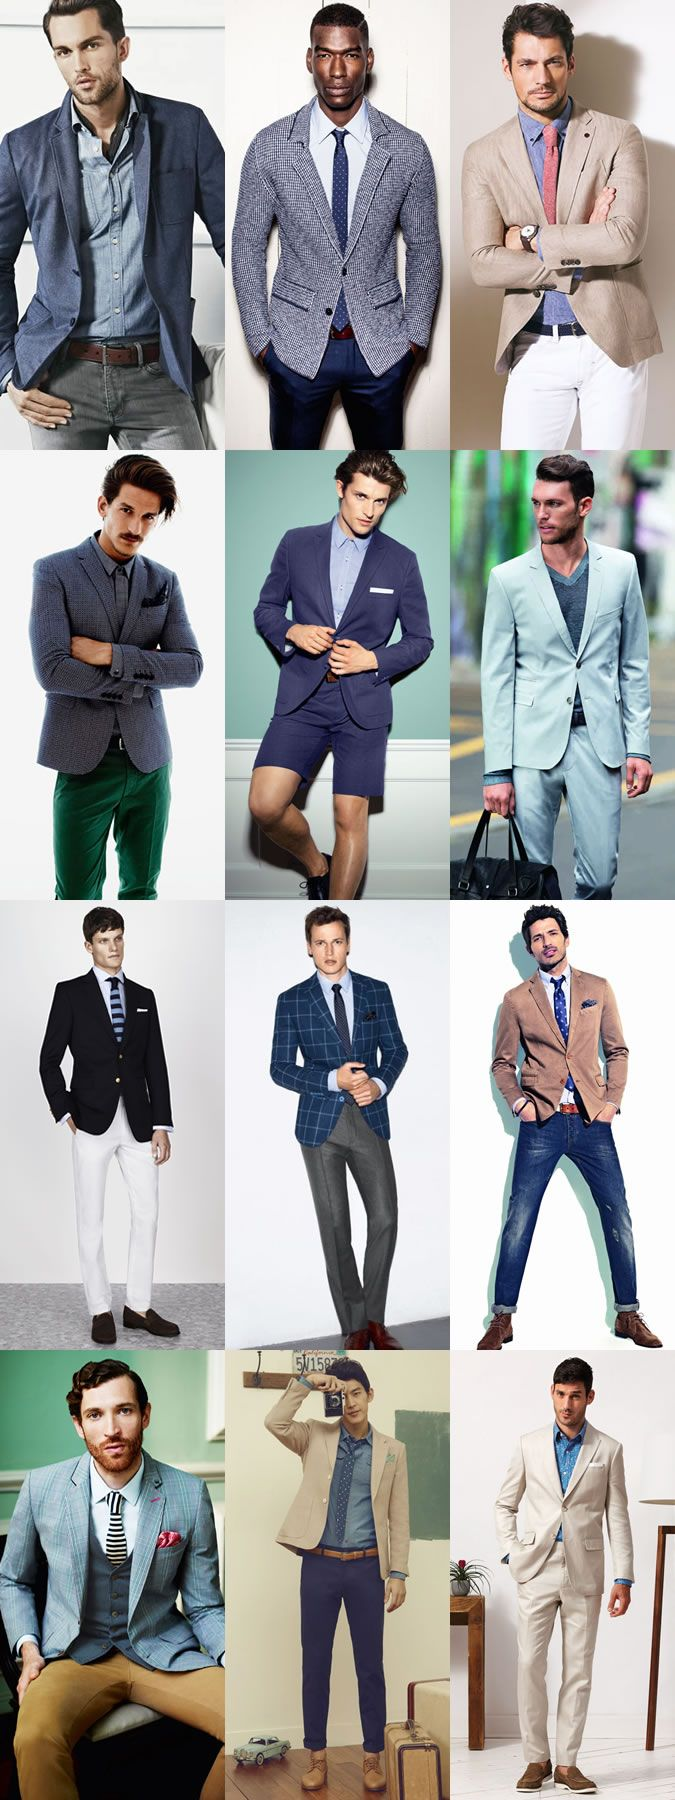 Mens Smart,Casual Office Dress Code Lookbook , Spring/Summer Inspired for  the creatives